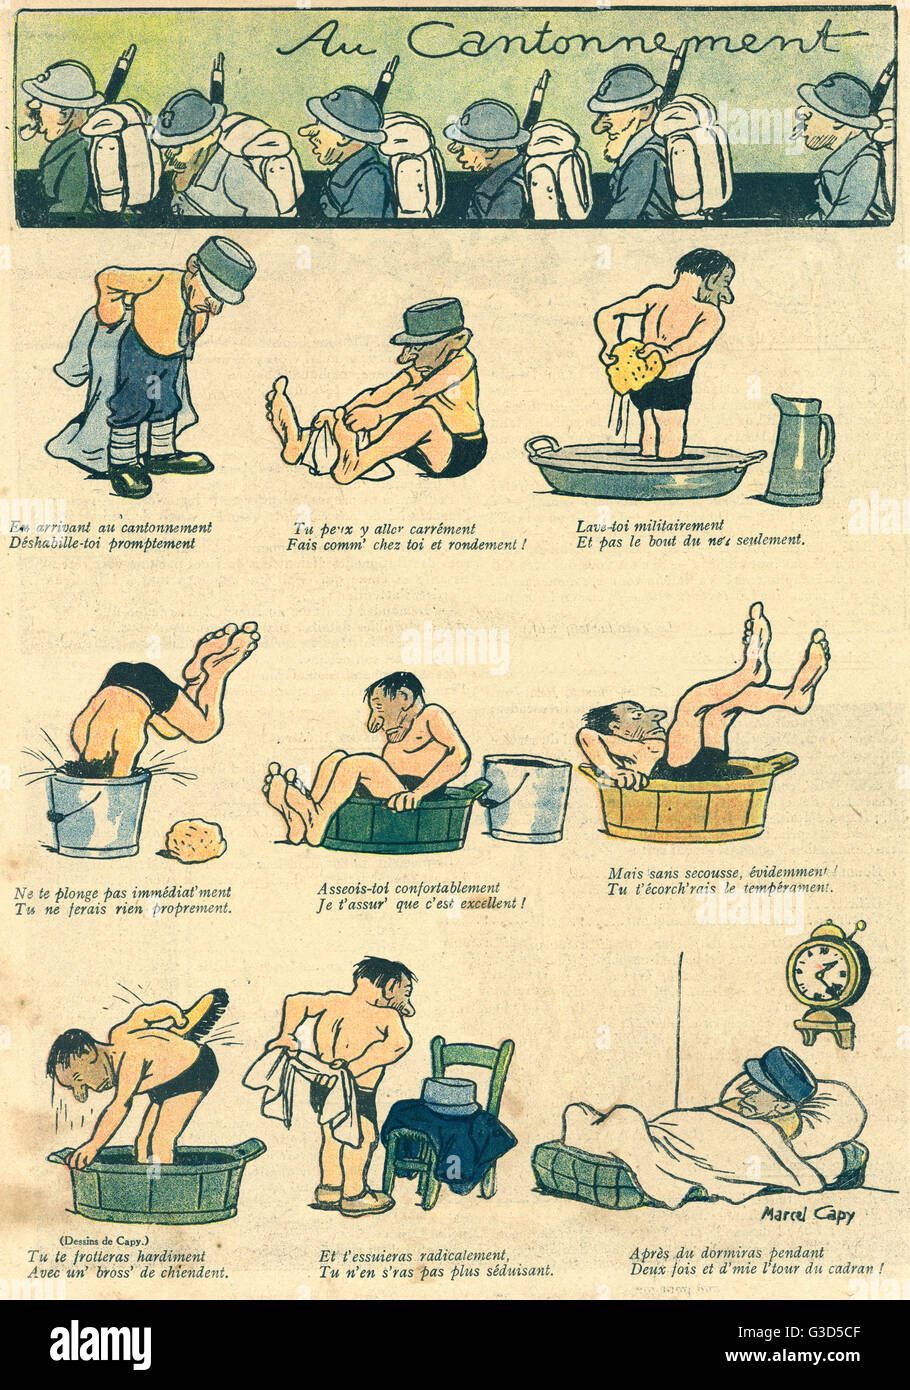 Cartoon, A soldier in his billet.  He undresses, washes in a series of small containers, then goes to bed for a - Stock Image